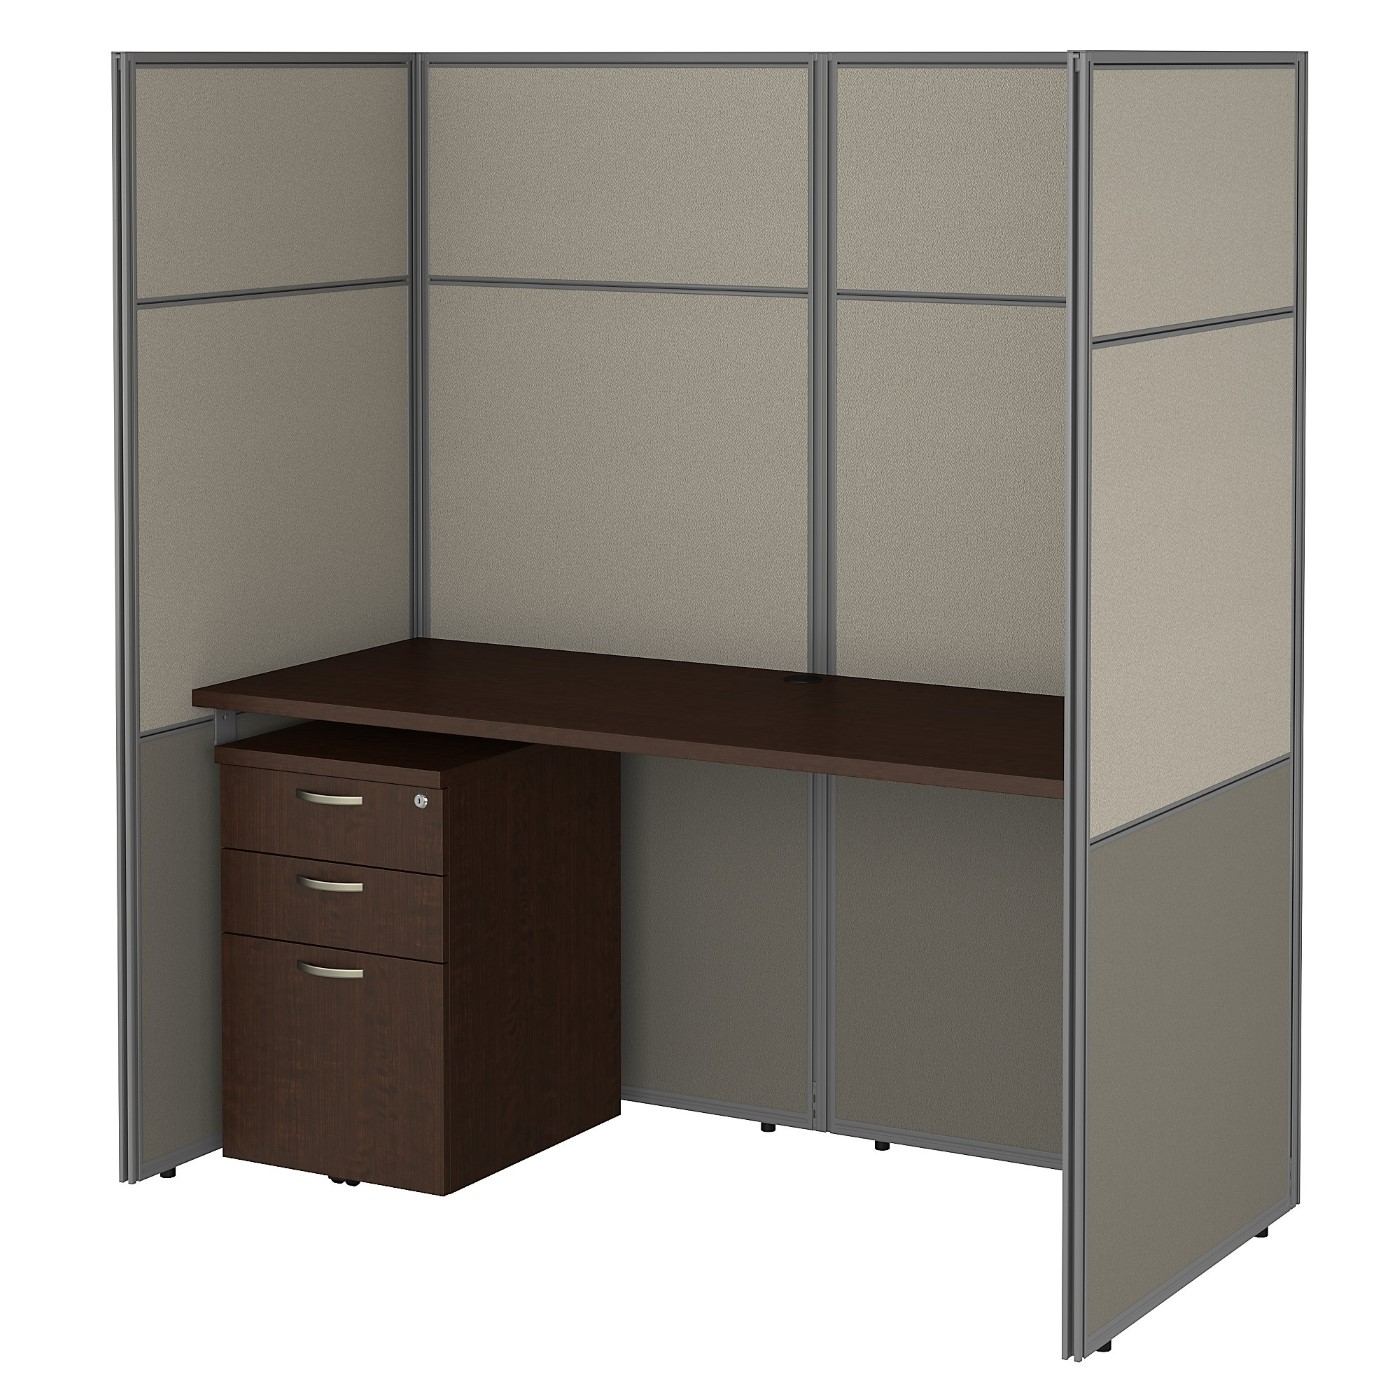 BUSH BUSINESS FURNITURE EASY OFFICE 60W CUBICLE DESK WITH FILE CABINET AND 66H CLOSED PANELS WORKSTATION. FREE SHIPPING 30H x 72L x 72W.  SALE DEDUCT 10% MORE ENTER '10percent' IN COUPON CODE BOX WHILE CHECKING OUT. ENDS 5-31-20.